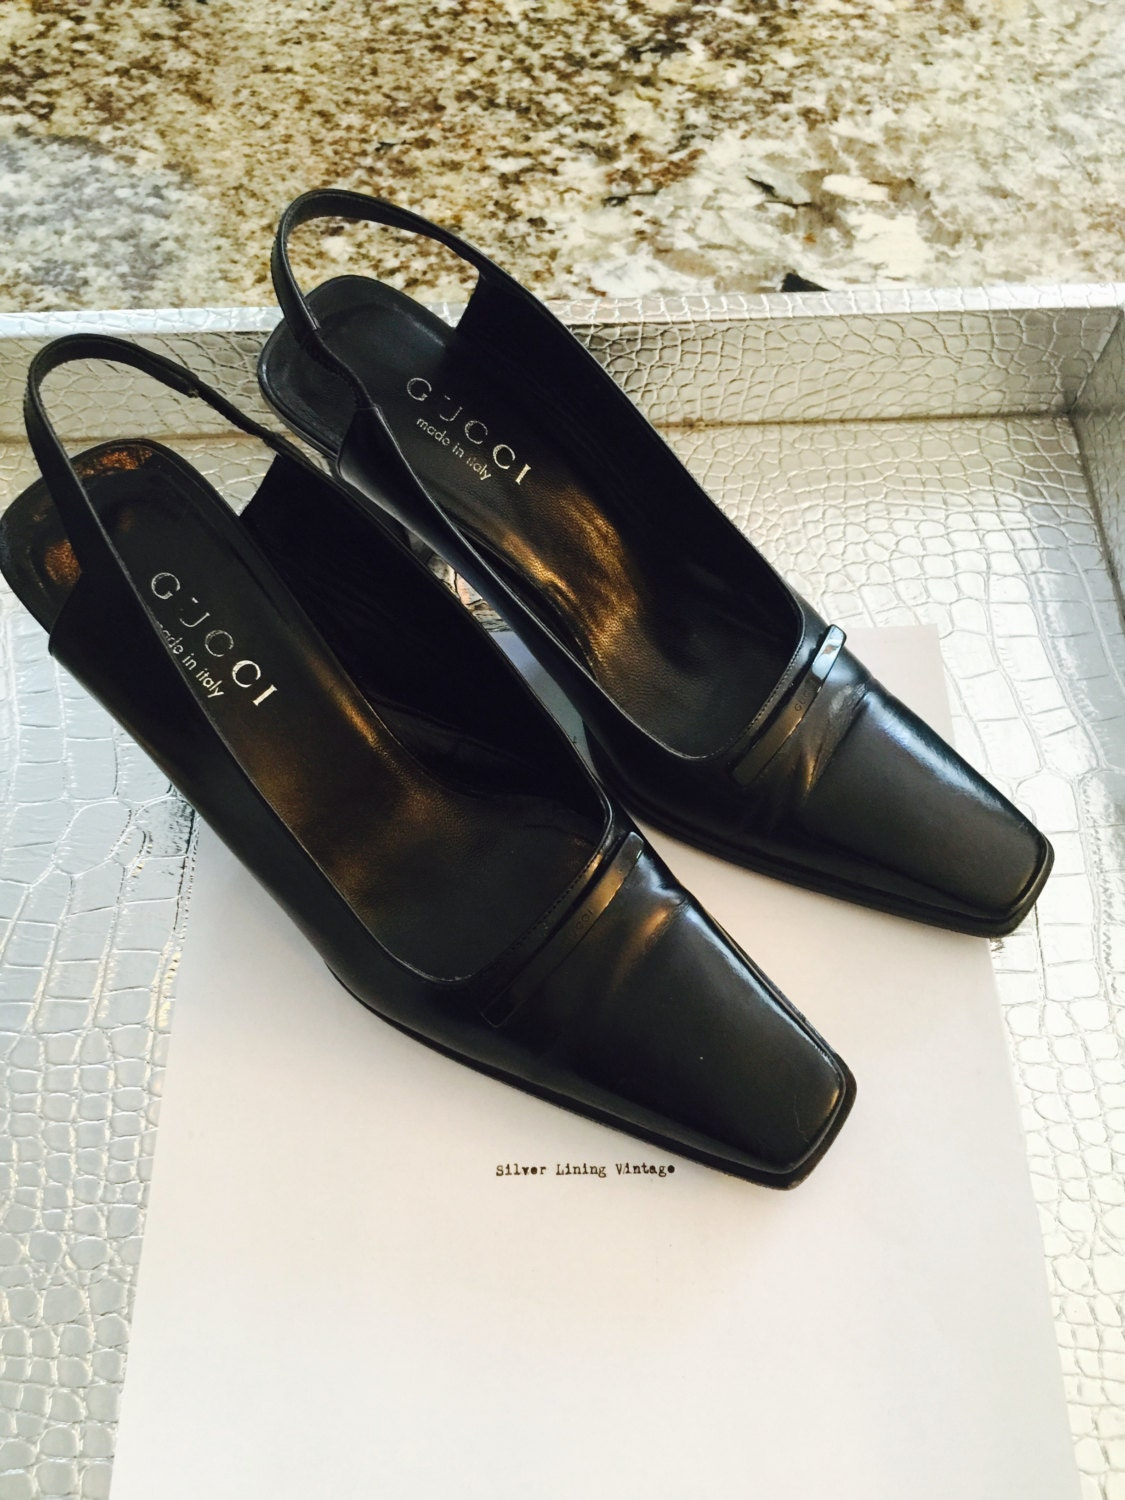 sale gucci shoes vintage gucci black vintage shoes ladies